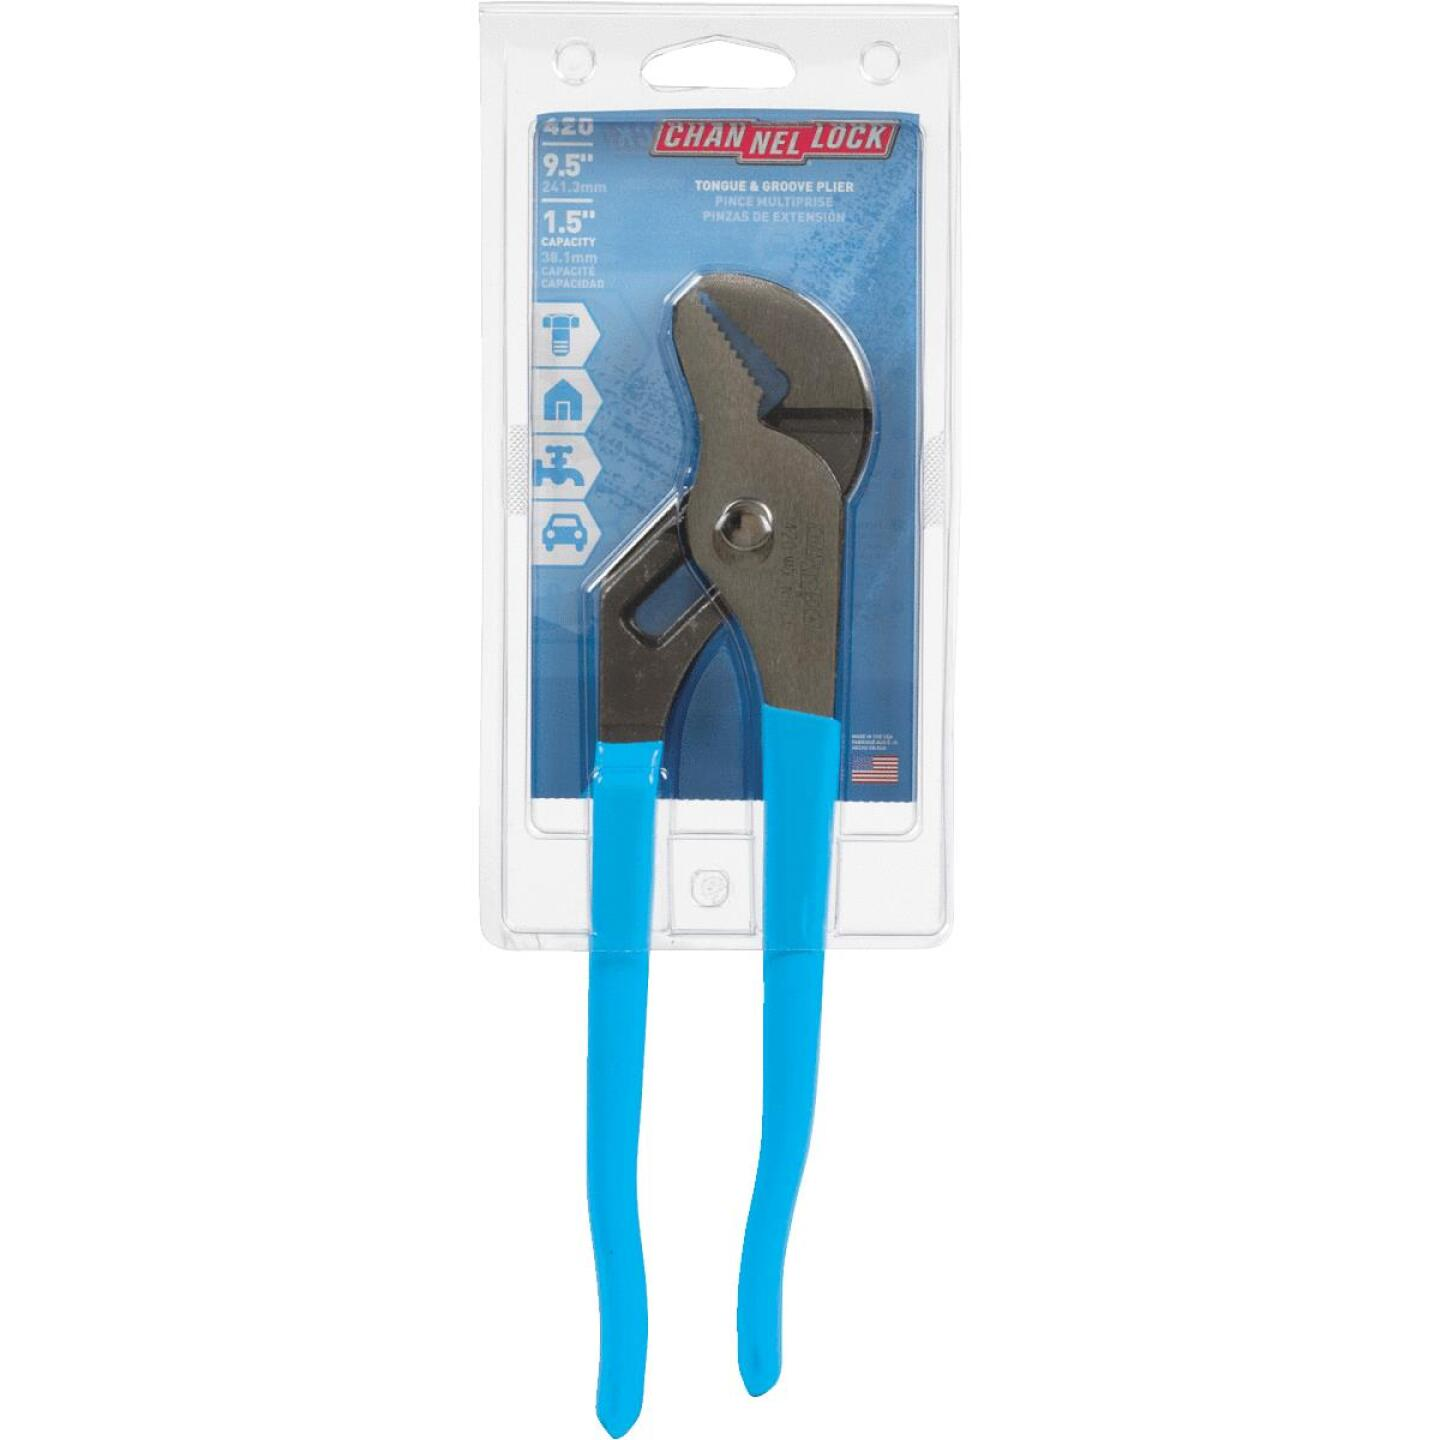 Channellock 9-1/2 In. Straight Jaw Groove Joint Pliers Image 2